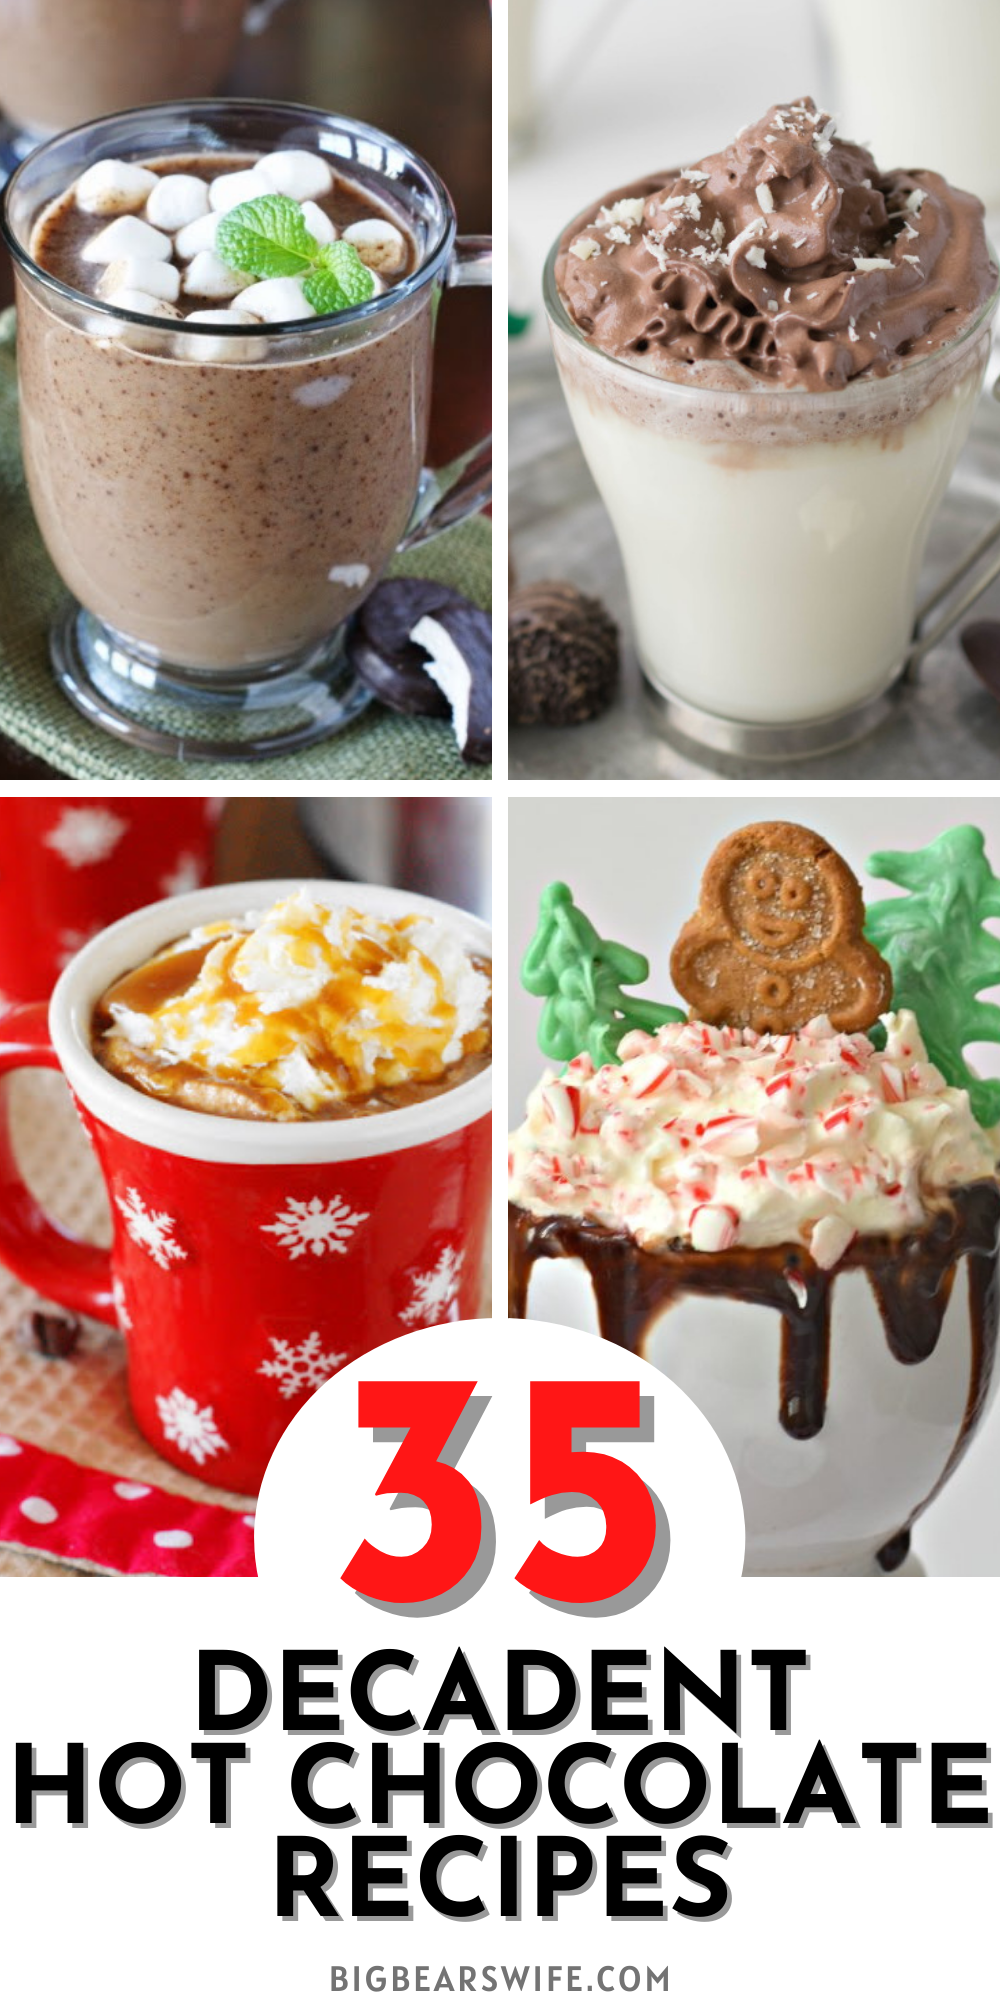 Need a little something to warm you up during these cold winter nights? Here you'll find 35 Decadent Hot Chocolate Recipes Plus 3 Hot Chocolate gifts from the kitchen! There is also a little information on how to set up your own holiday Hot Chocolate Bar!